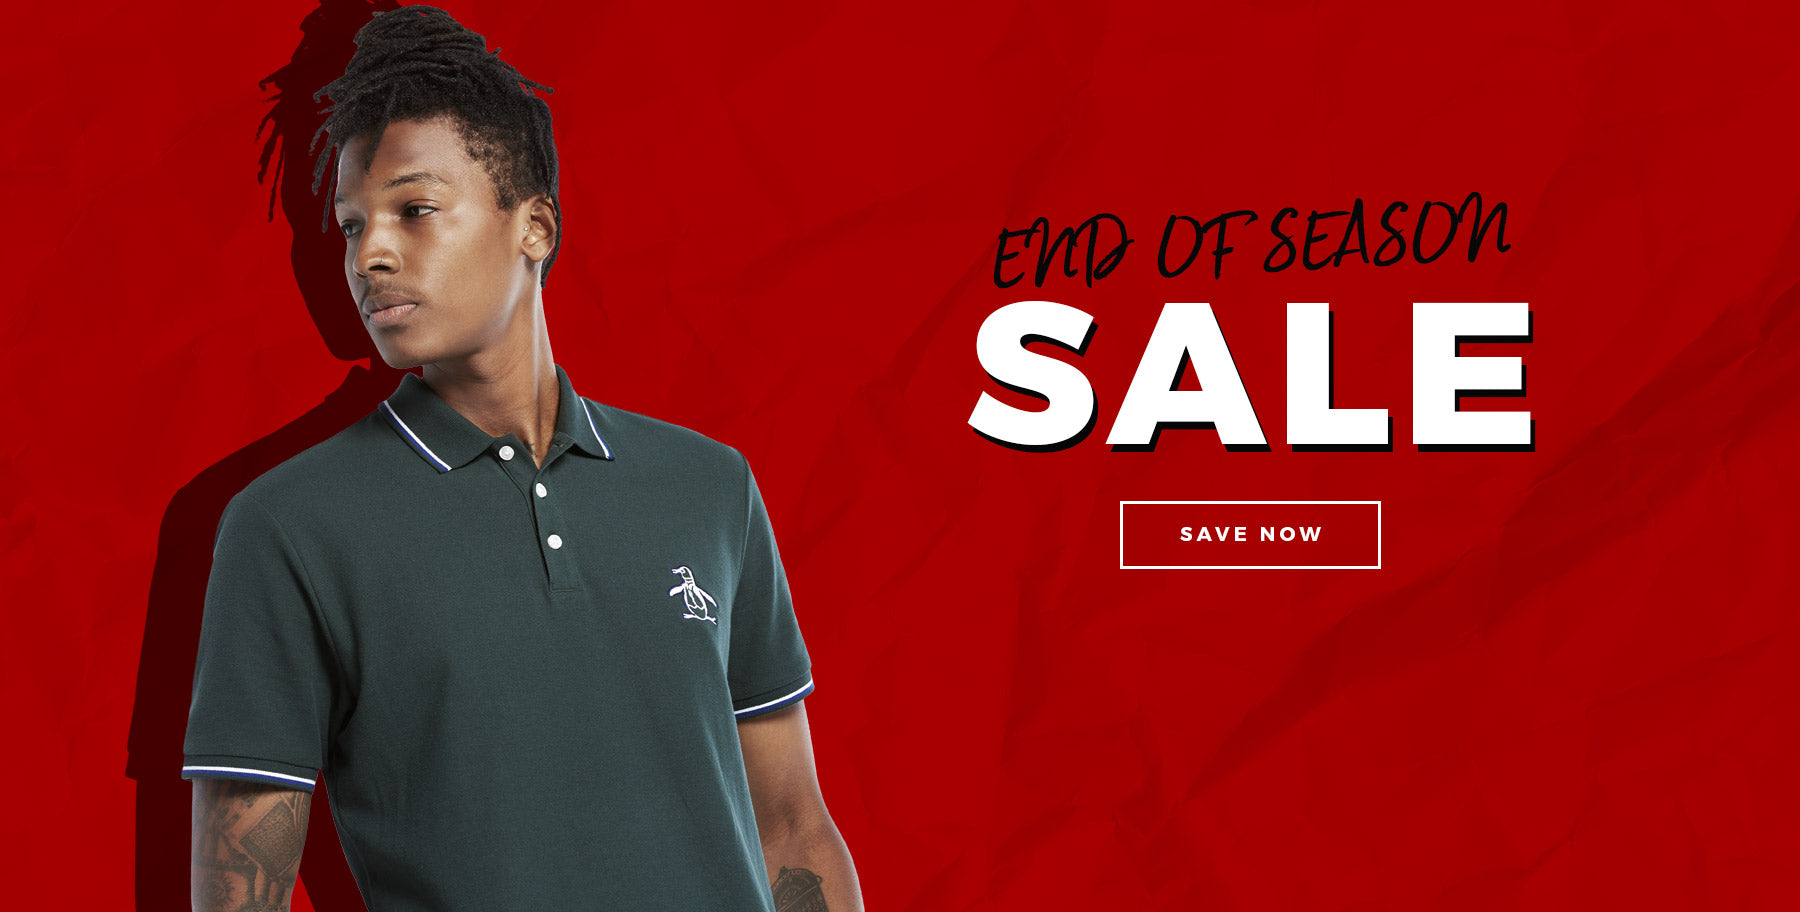 End Of Season Sale - Save Now